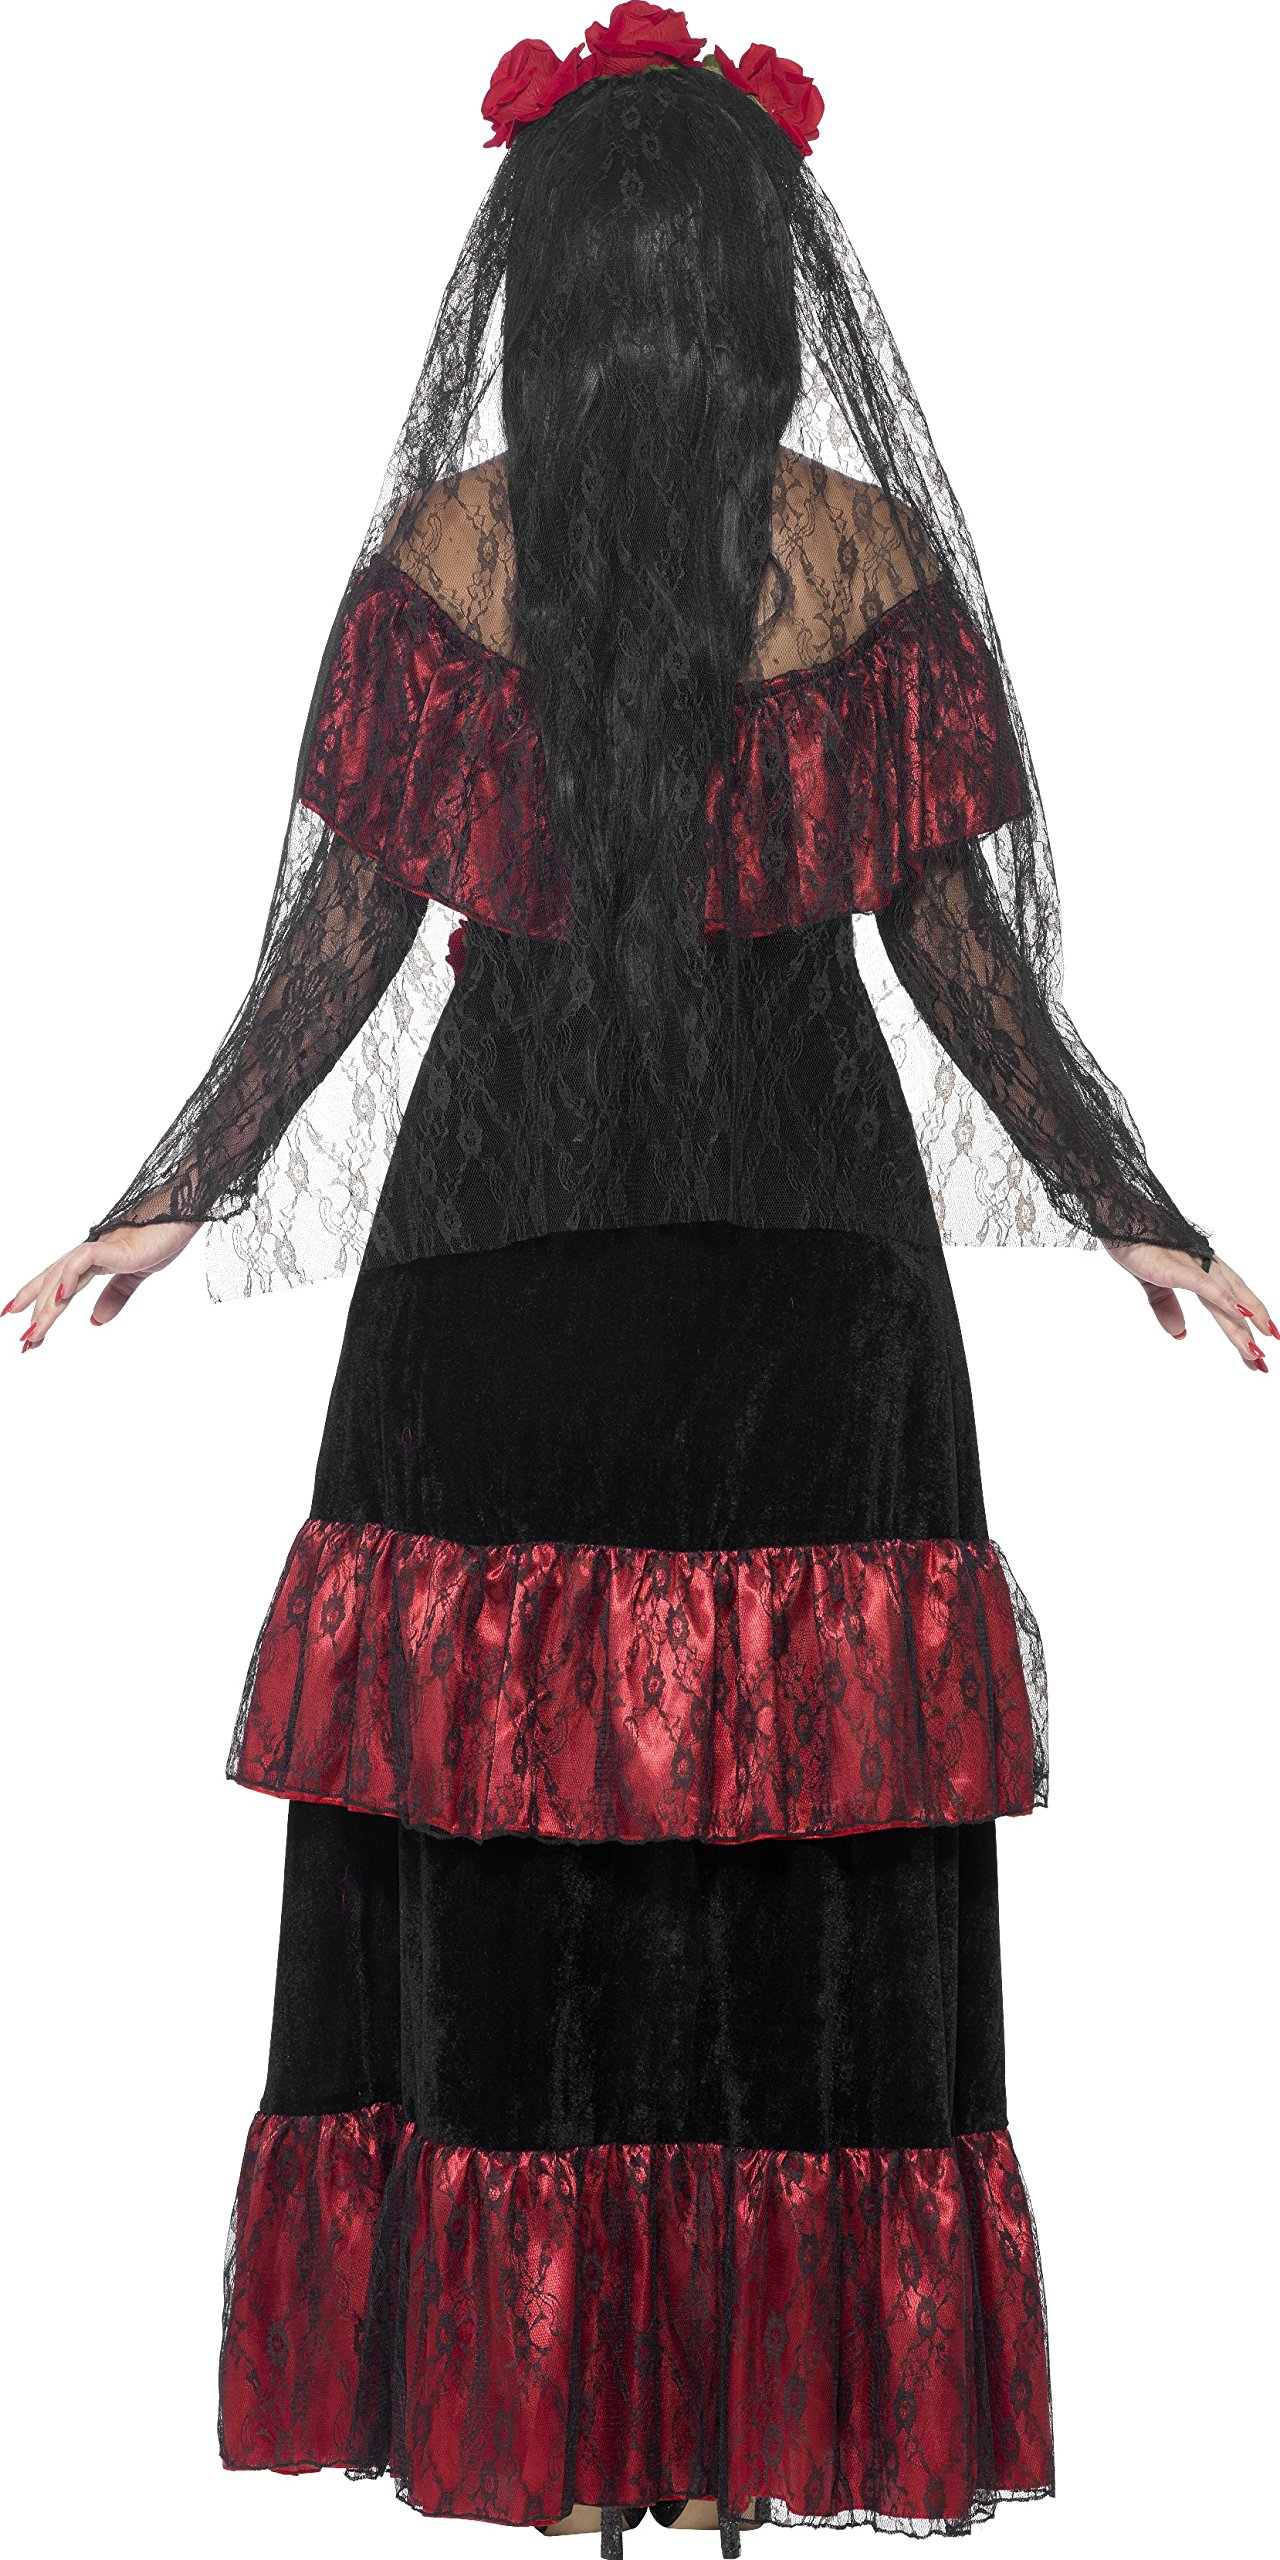 Smiffy's Women's Day The Dead Bride Costume, Dress Rose Veil, Day The Dead, Halloween, Size 10-12, 43739 by Smiffy's (Image #2)